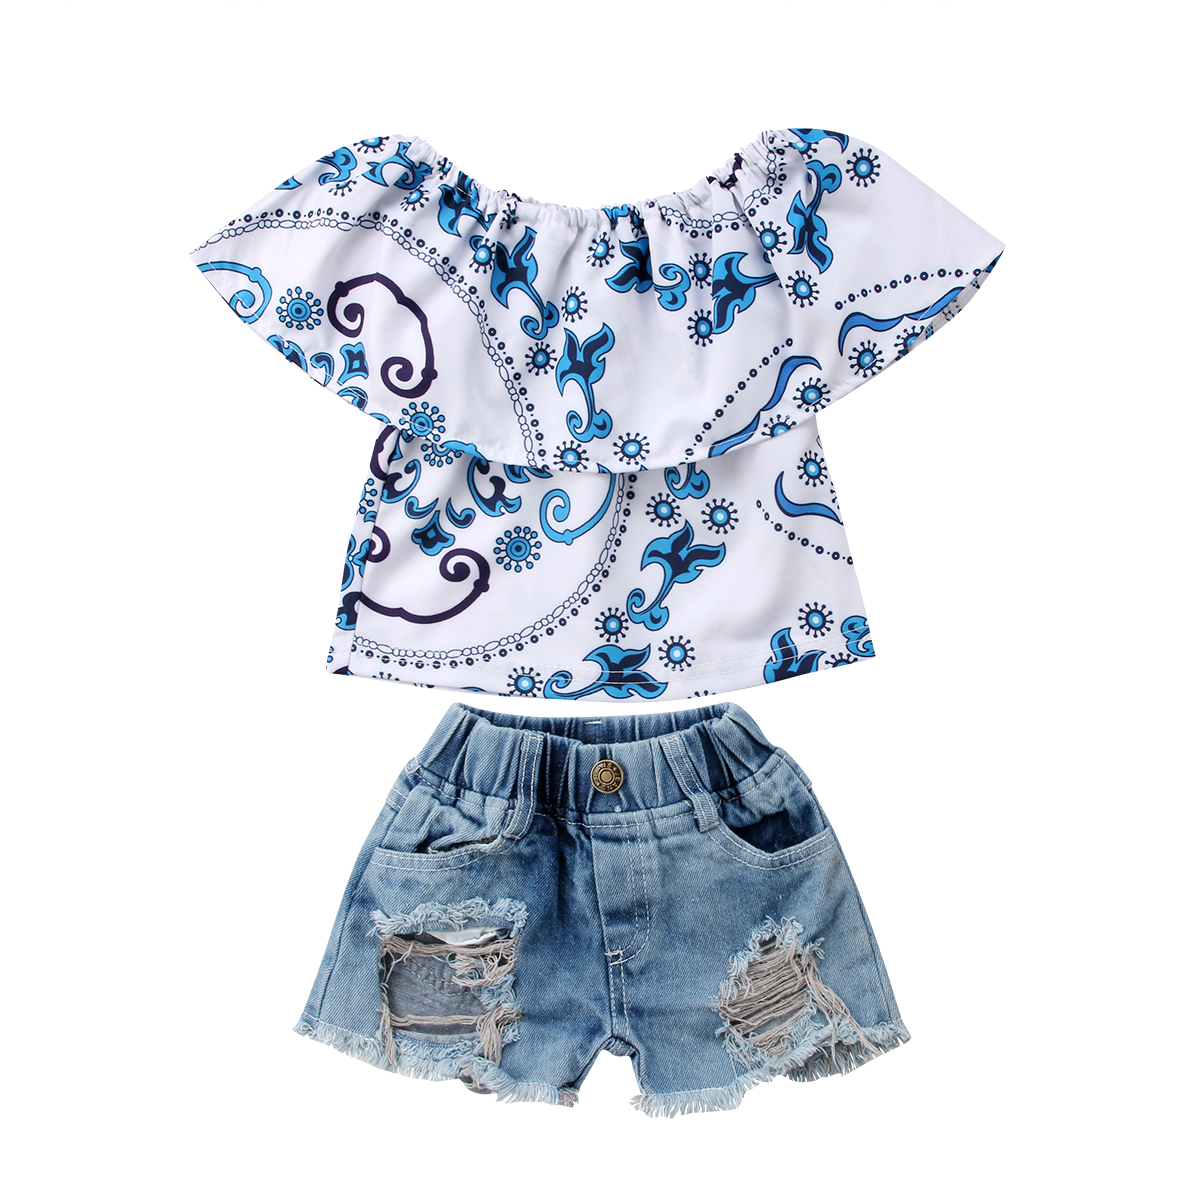 2PCS Toddler Baby Girls Outfits Summer T-shirt Tops+Shorts Sequins Outfits 0-3T